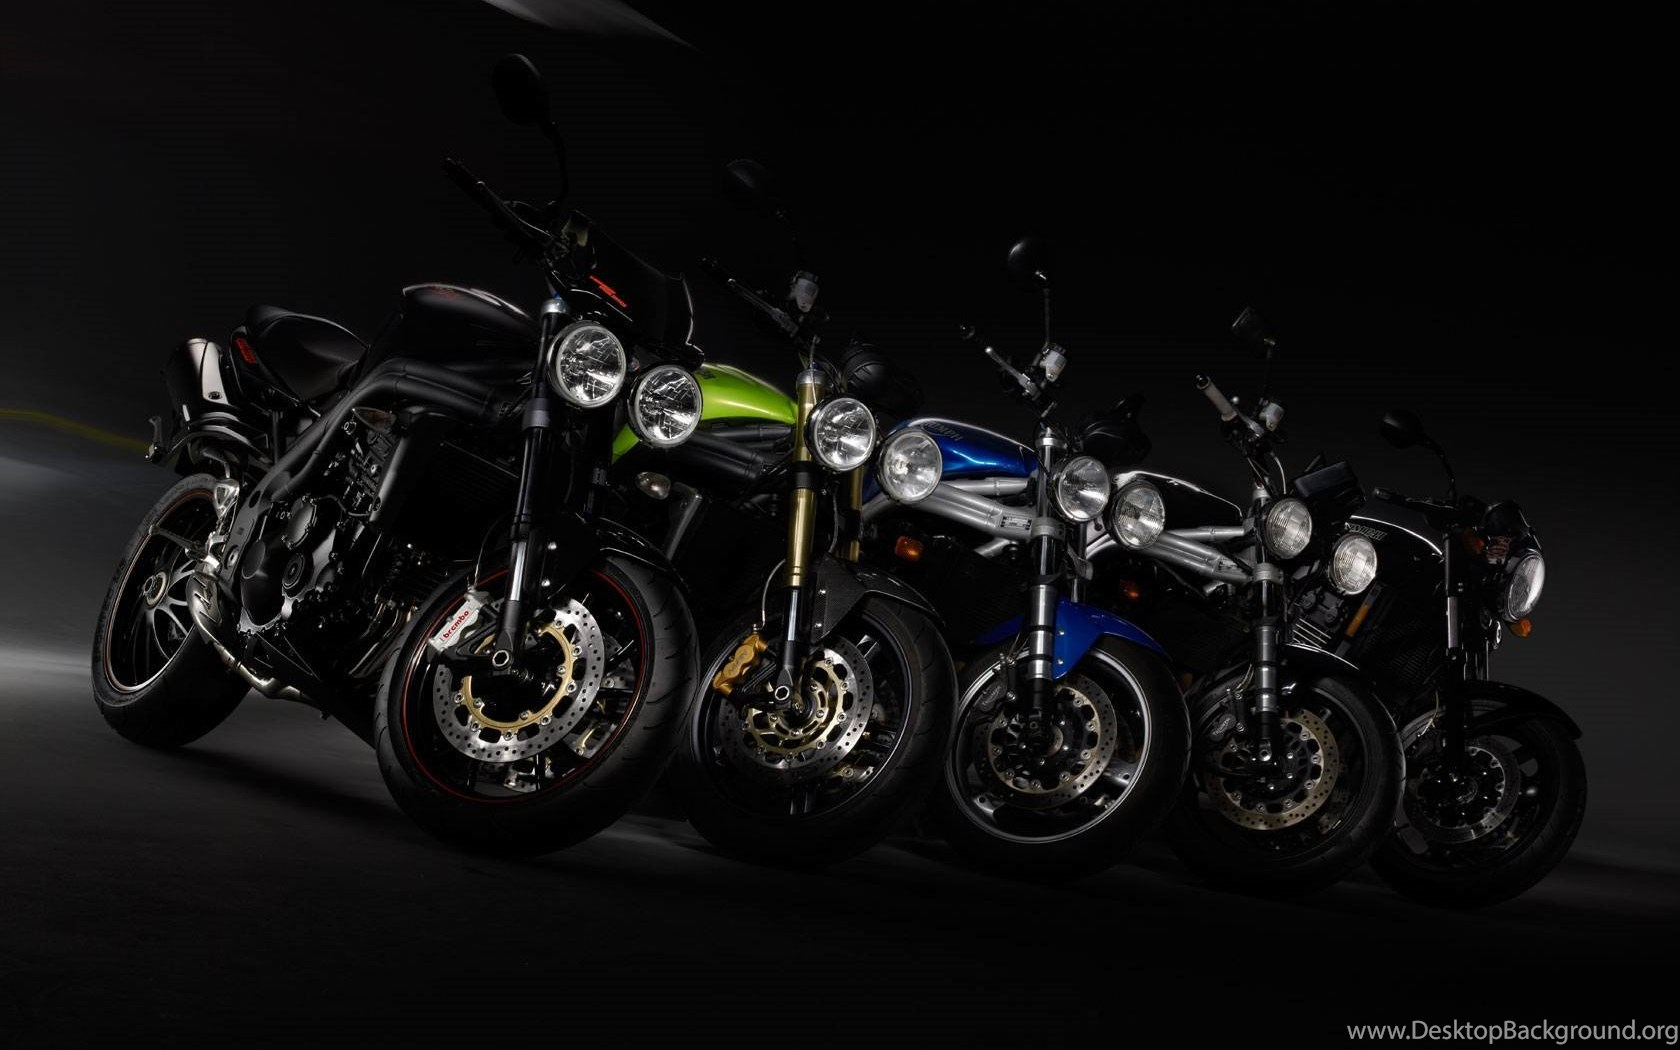 triumph speed triple 8 photo, image, picture and wallpapers